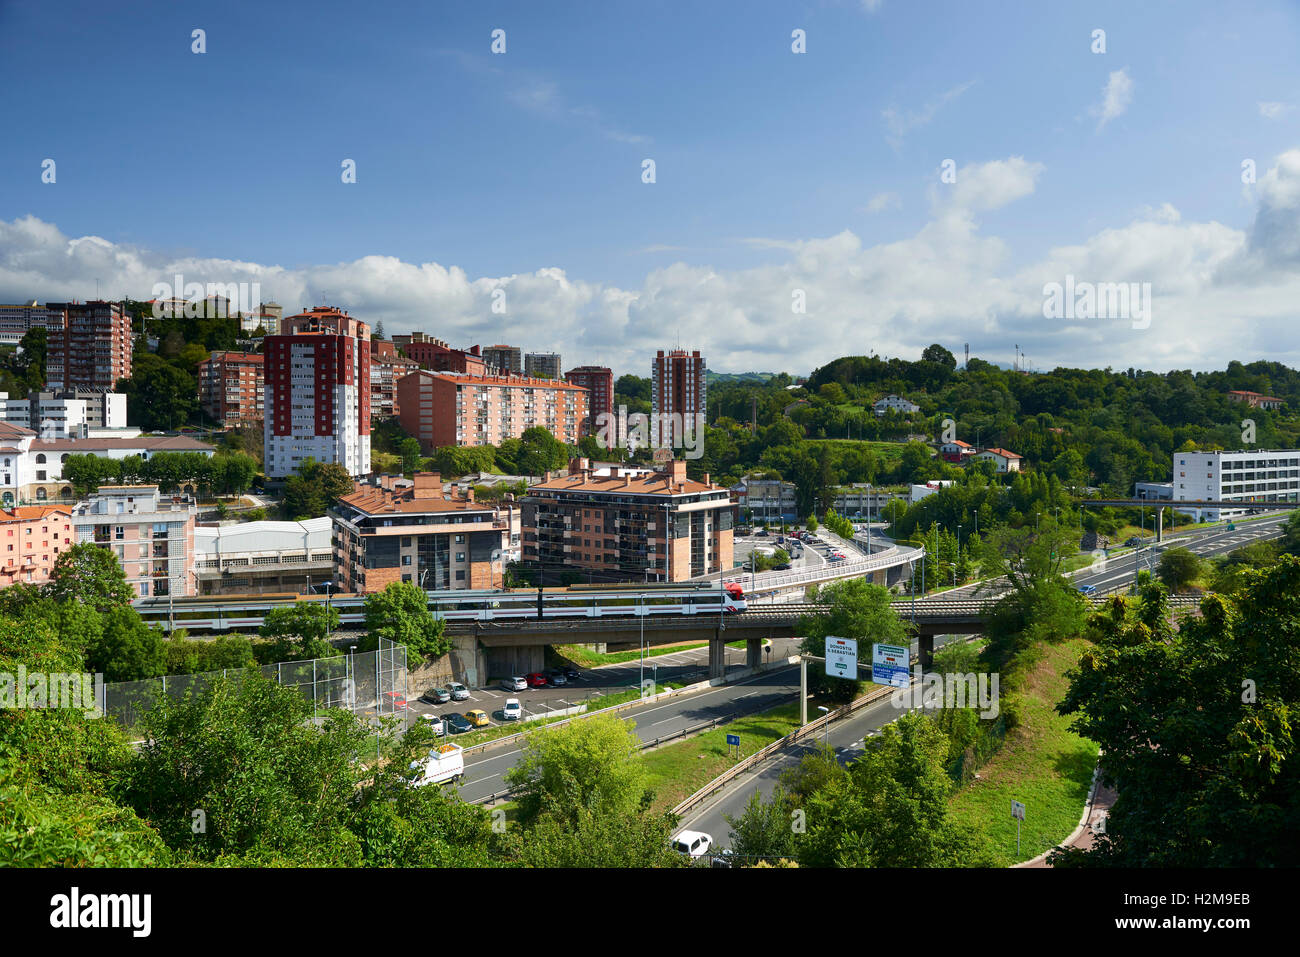 Train in Donostia, Guipuzkoa, Basque Country, Euskadi, Spain, Europe - Stock Image